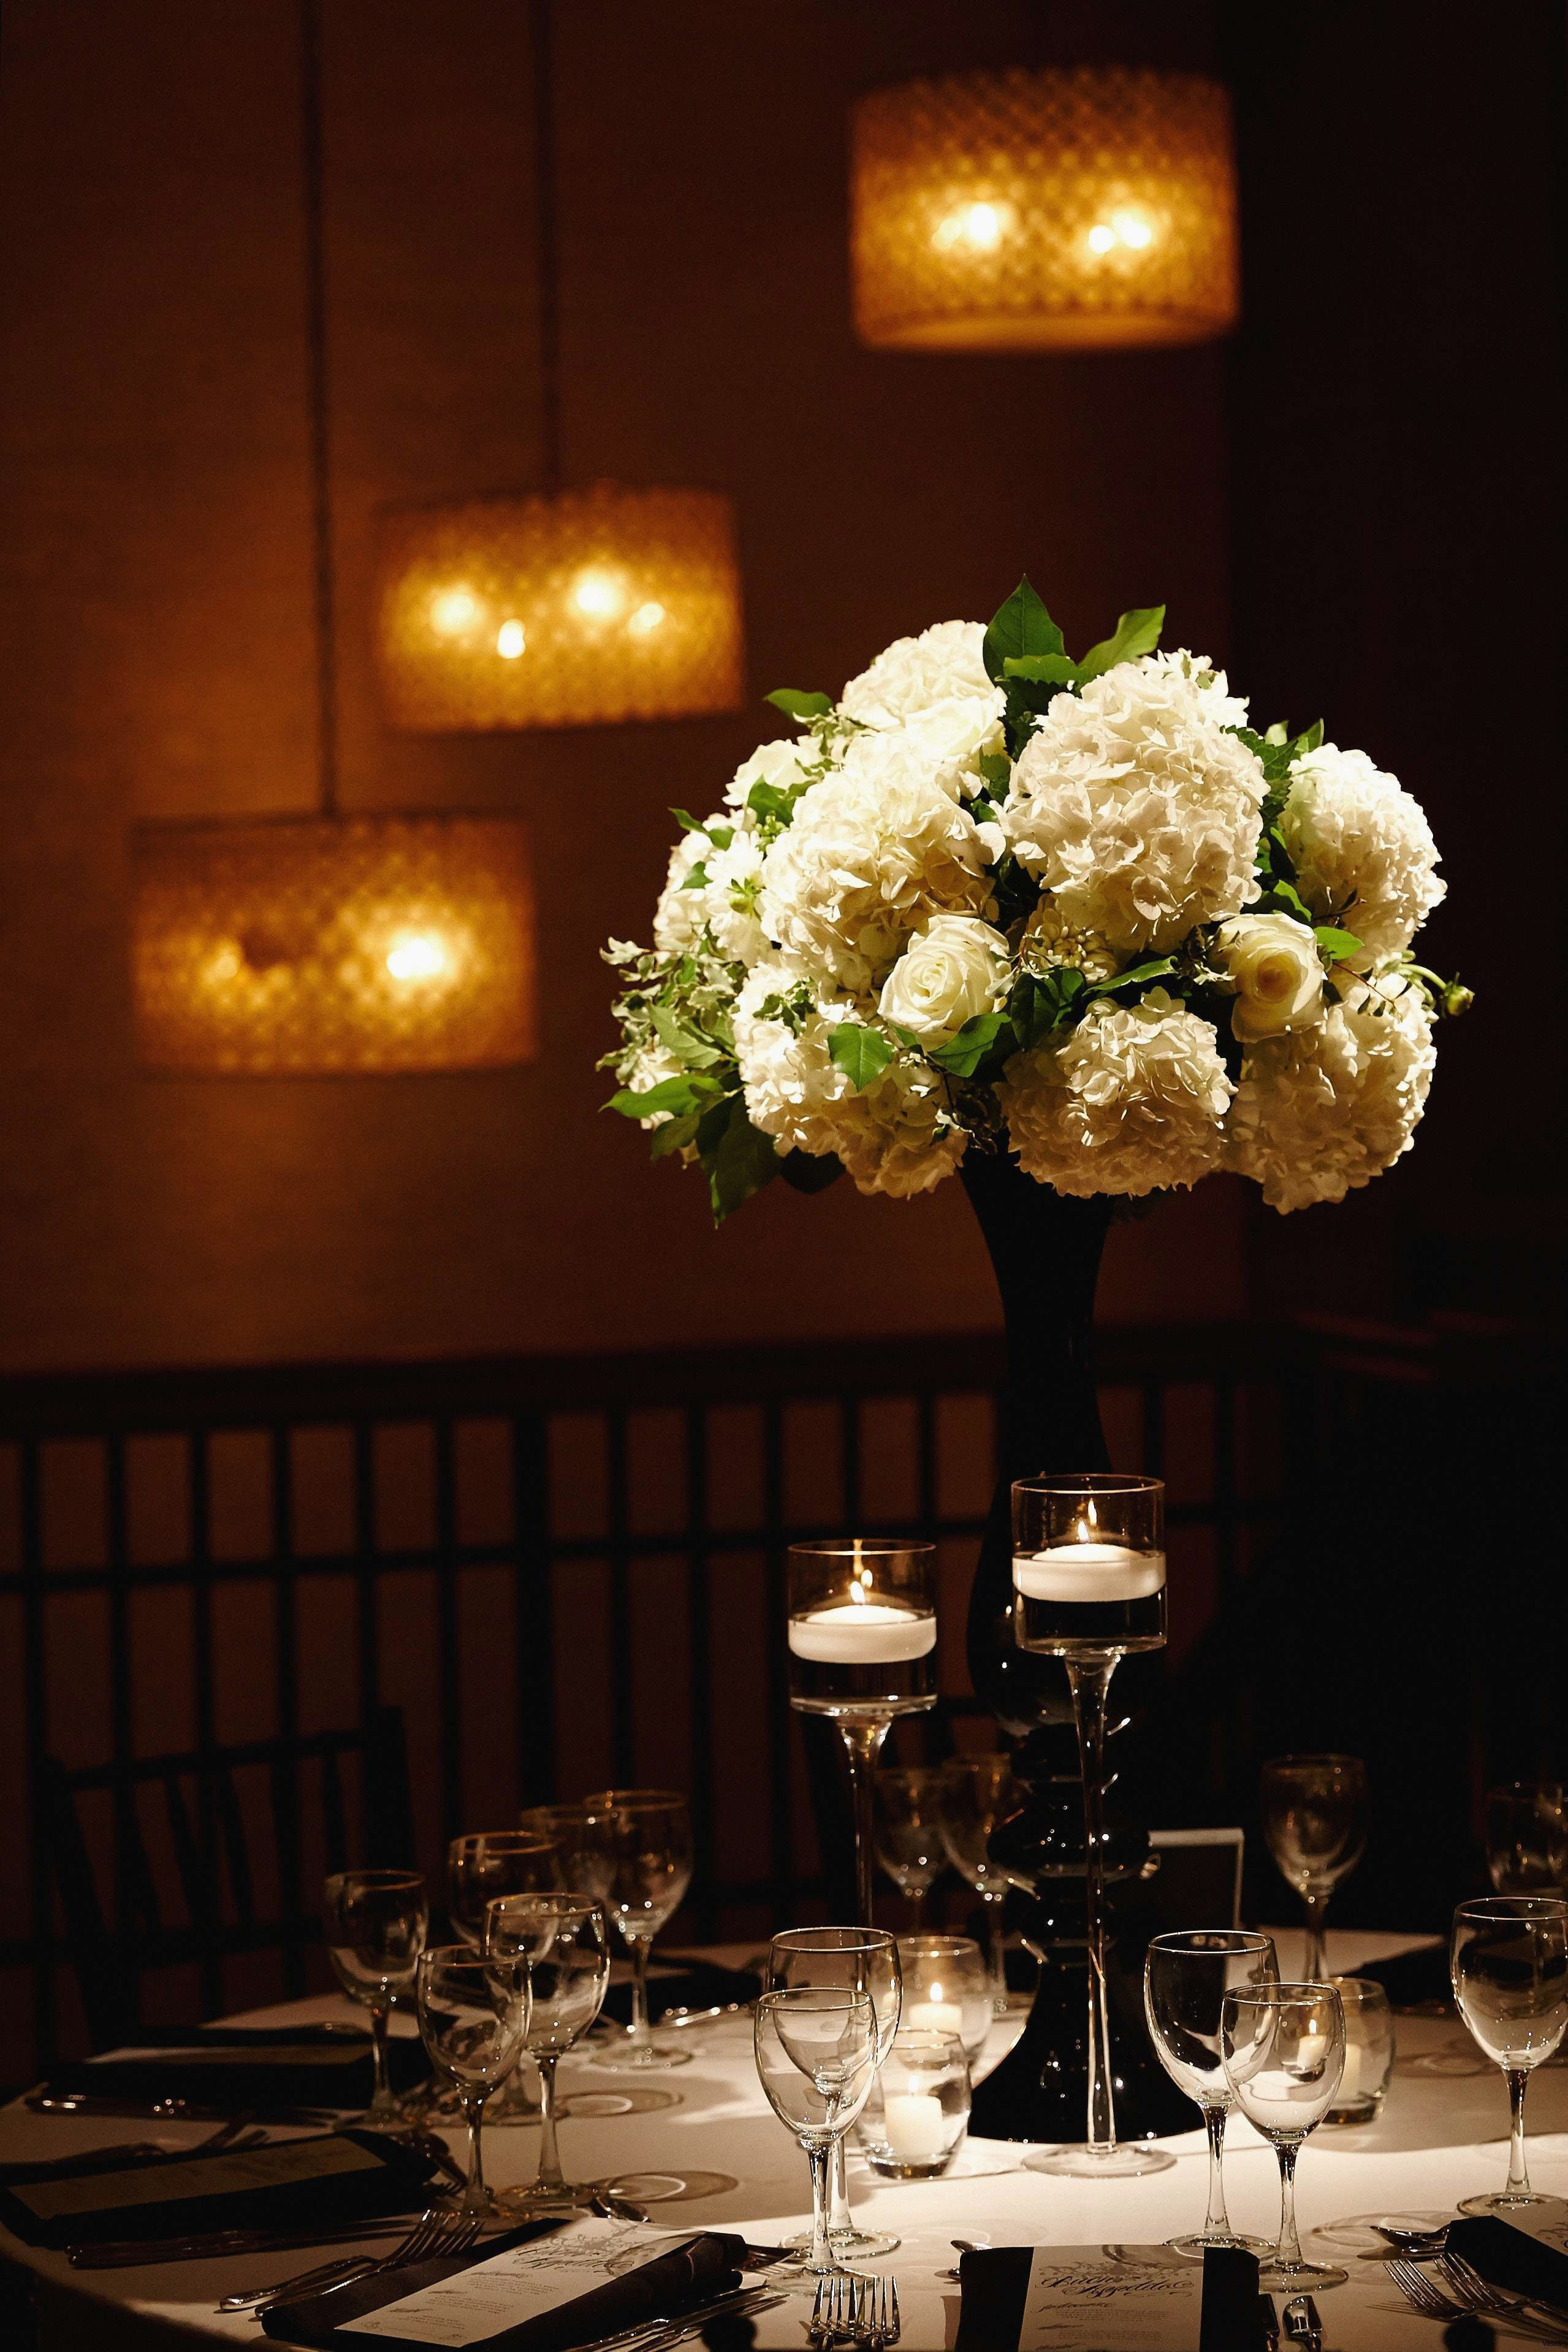 milk can vase of elegant dinner inspiration prasent healthy foods unlimited photo for dinner inspiration elegant il fullxfull h vases black vase white flowers zoomi 0d with design of